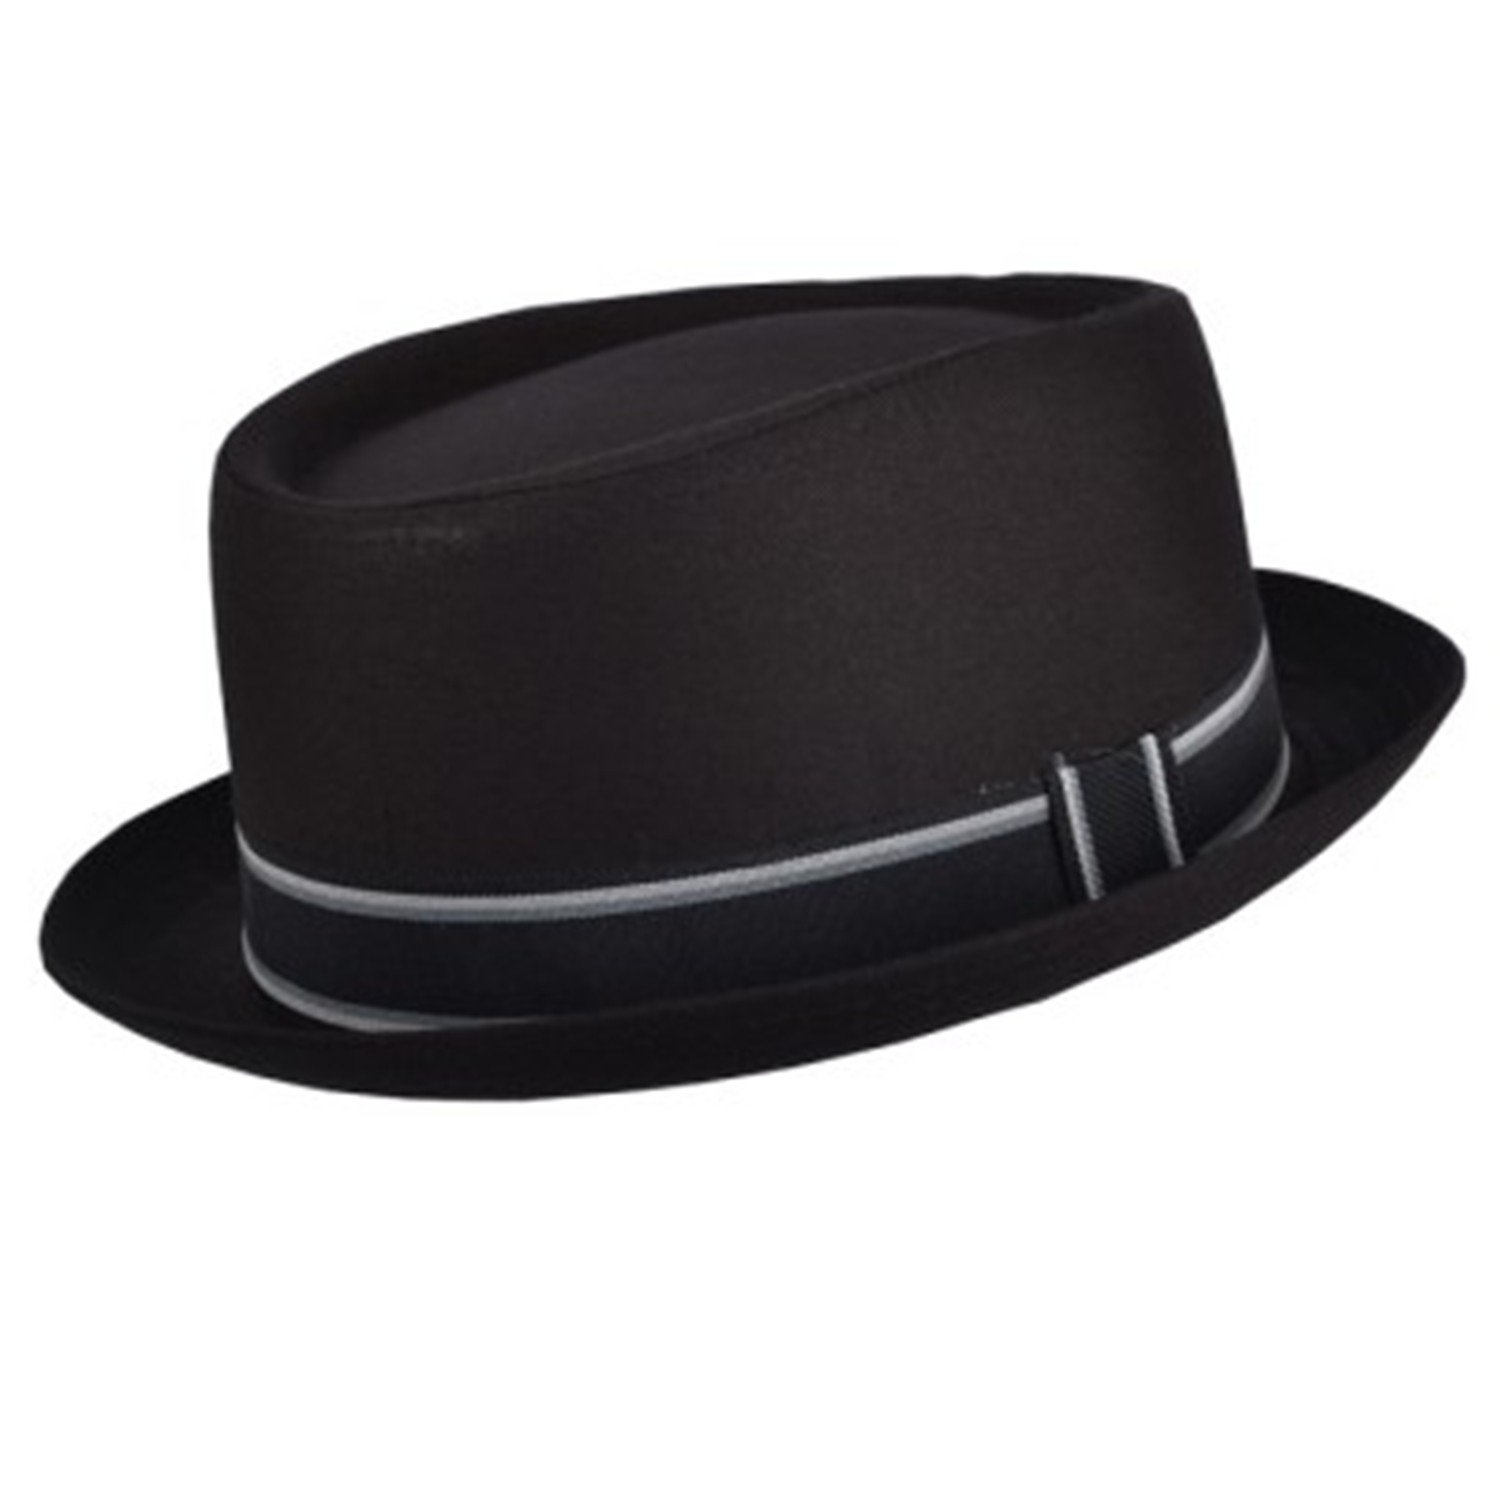 Black Cotton Porkpie Trilby Hat with grey band (59cm large/xlarge)